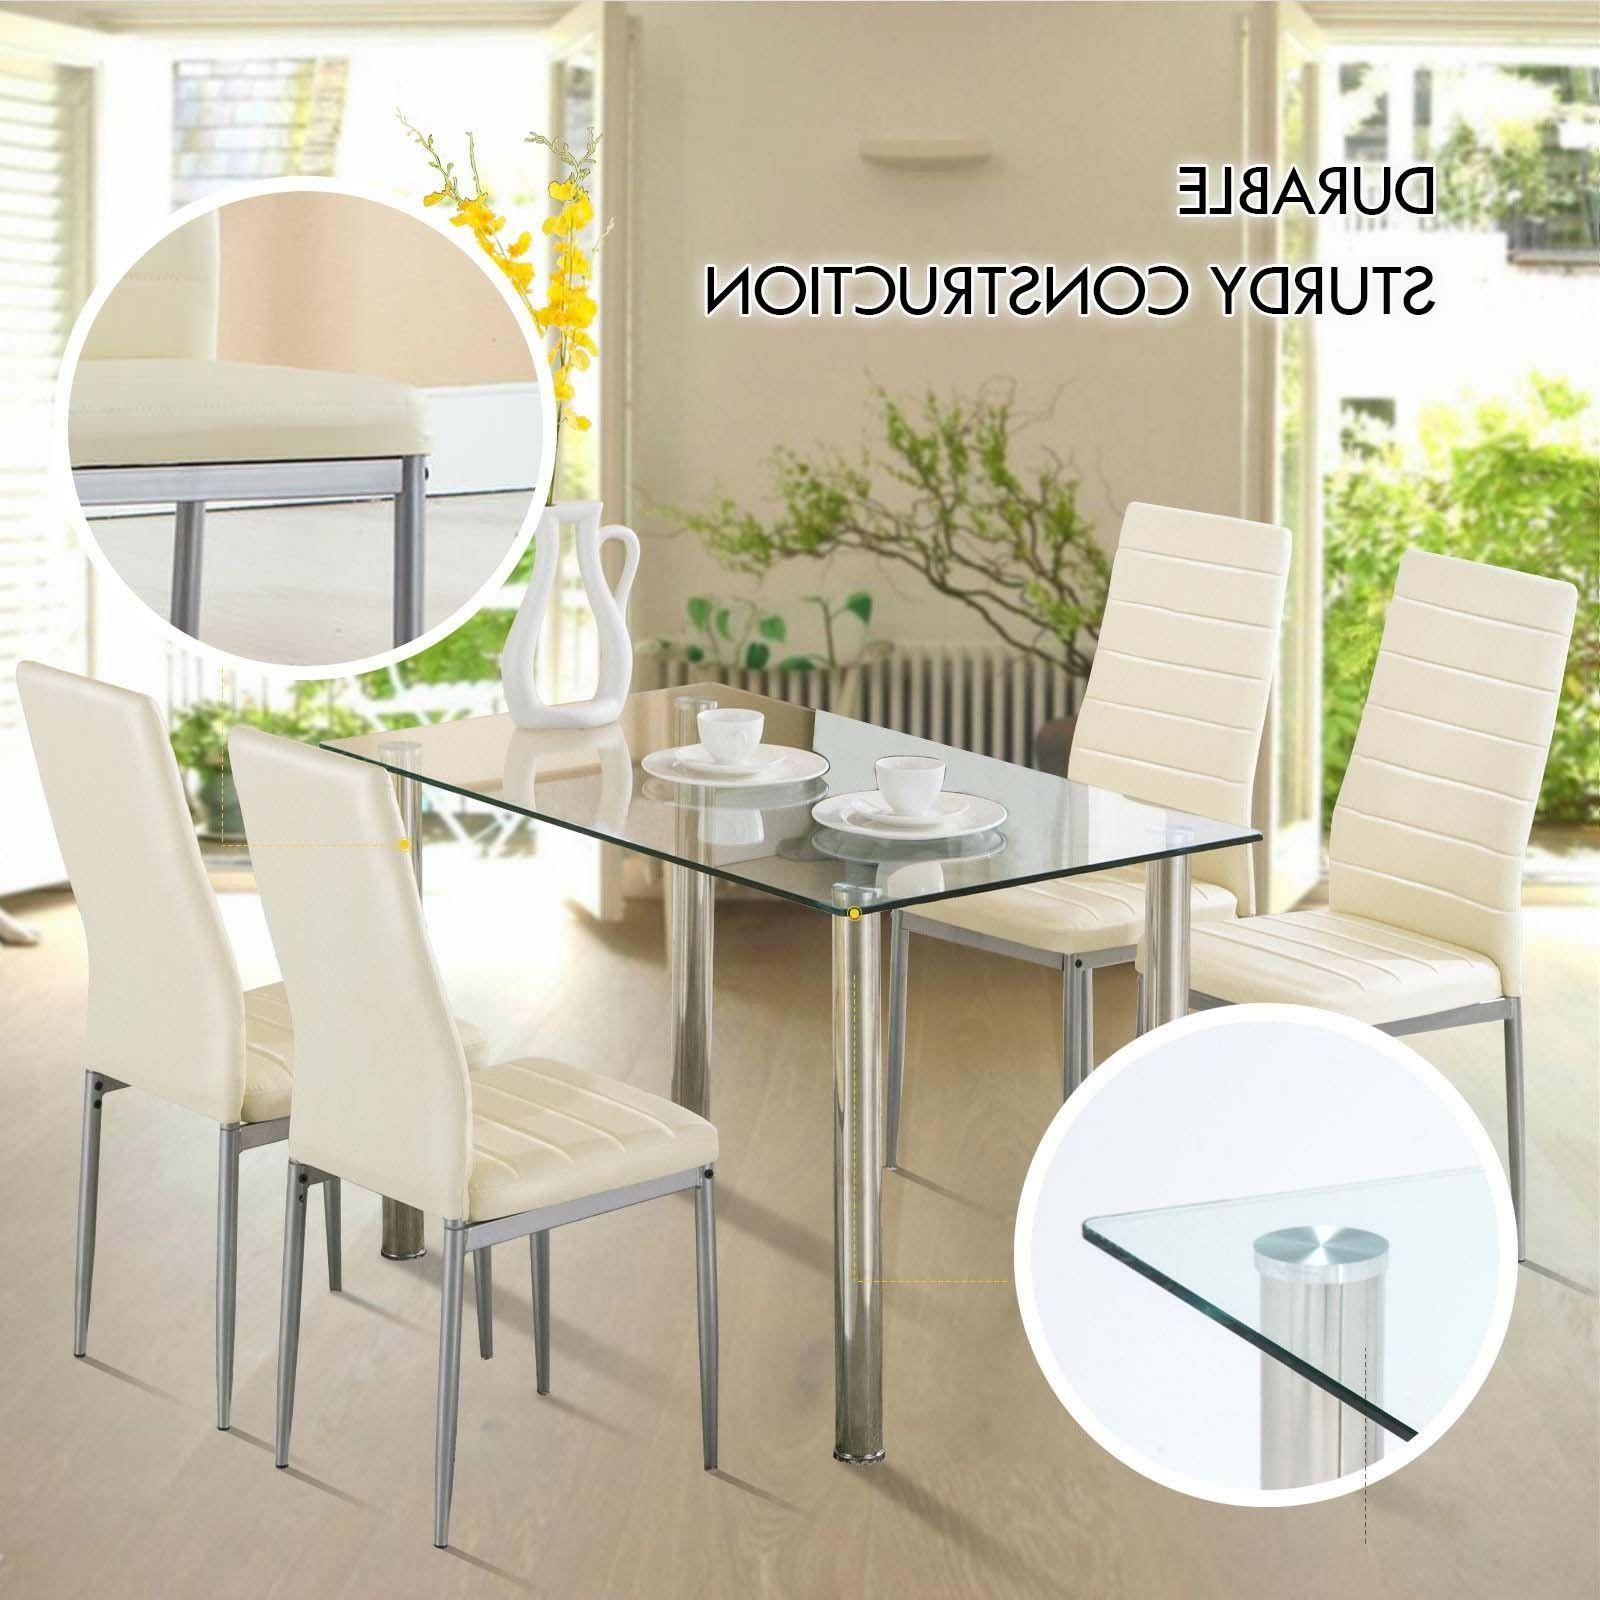 Set of 4 Chairs Leather Design+ Table Home